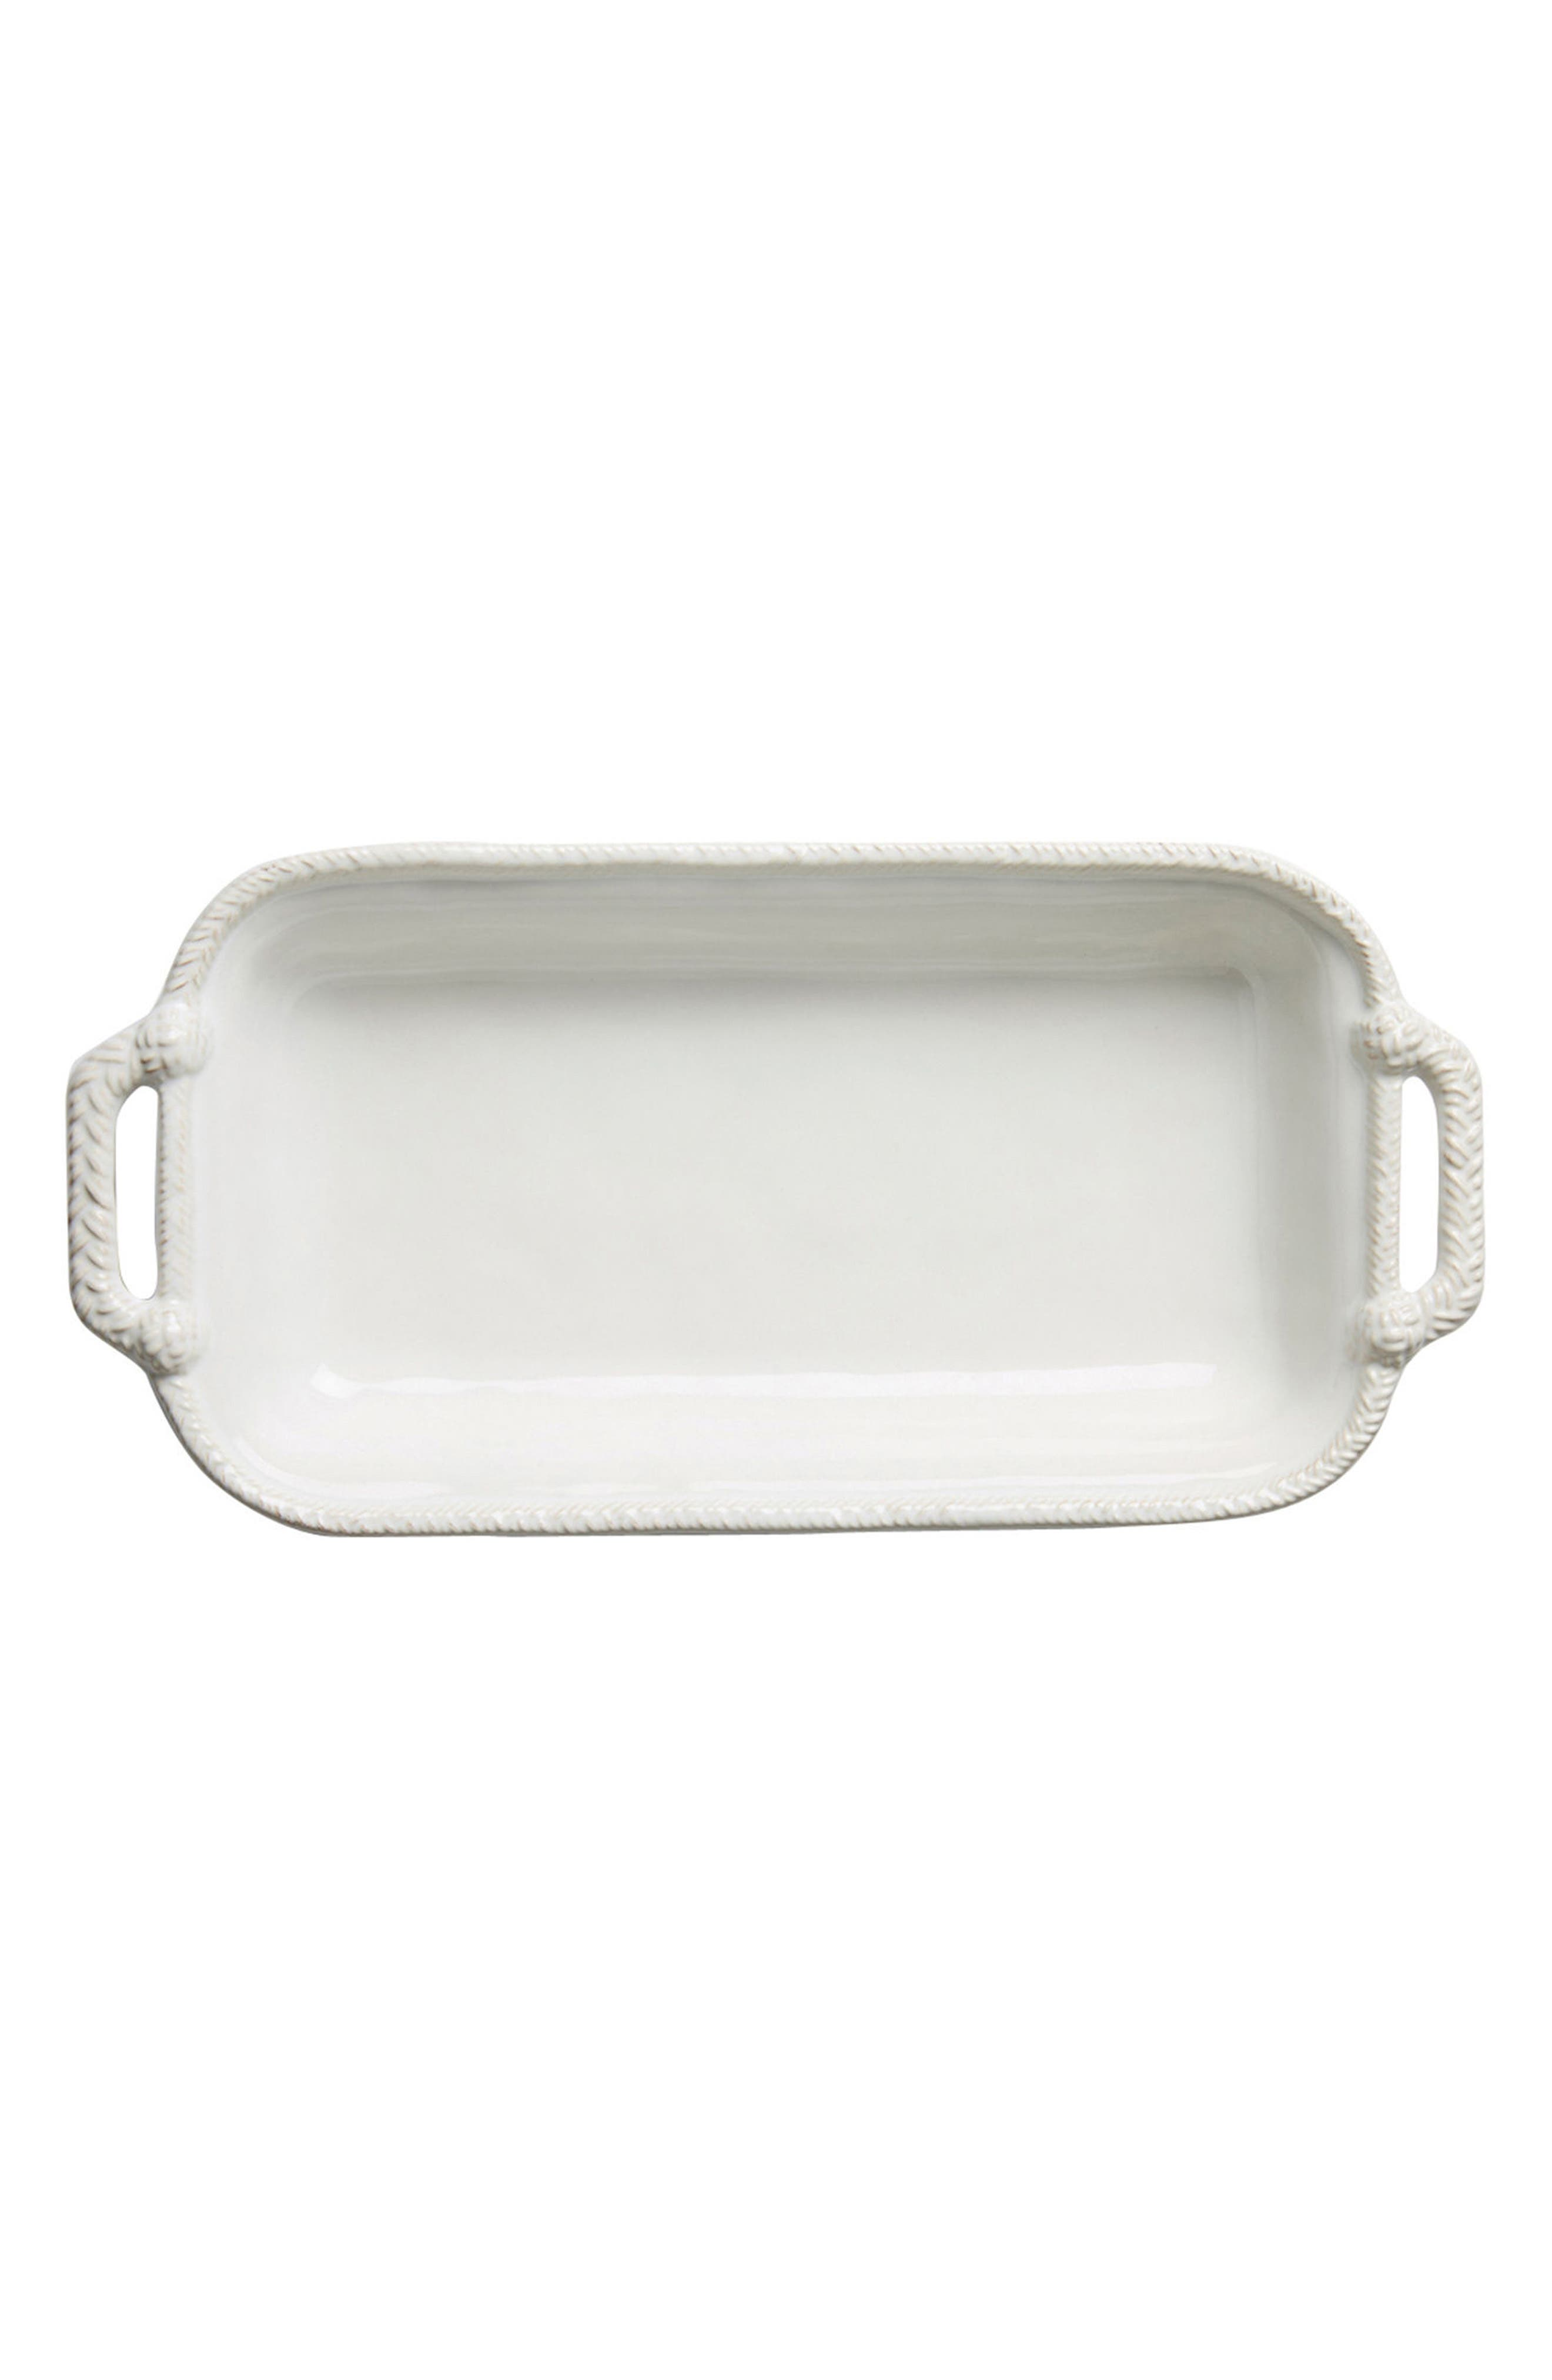 Le Panier 2-Quart Rectangular Baking Dish,                         Main,                         color, WHITEWASH